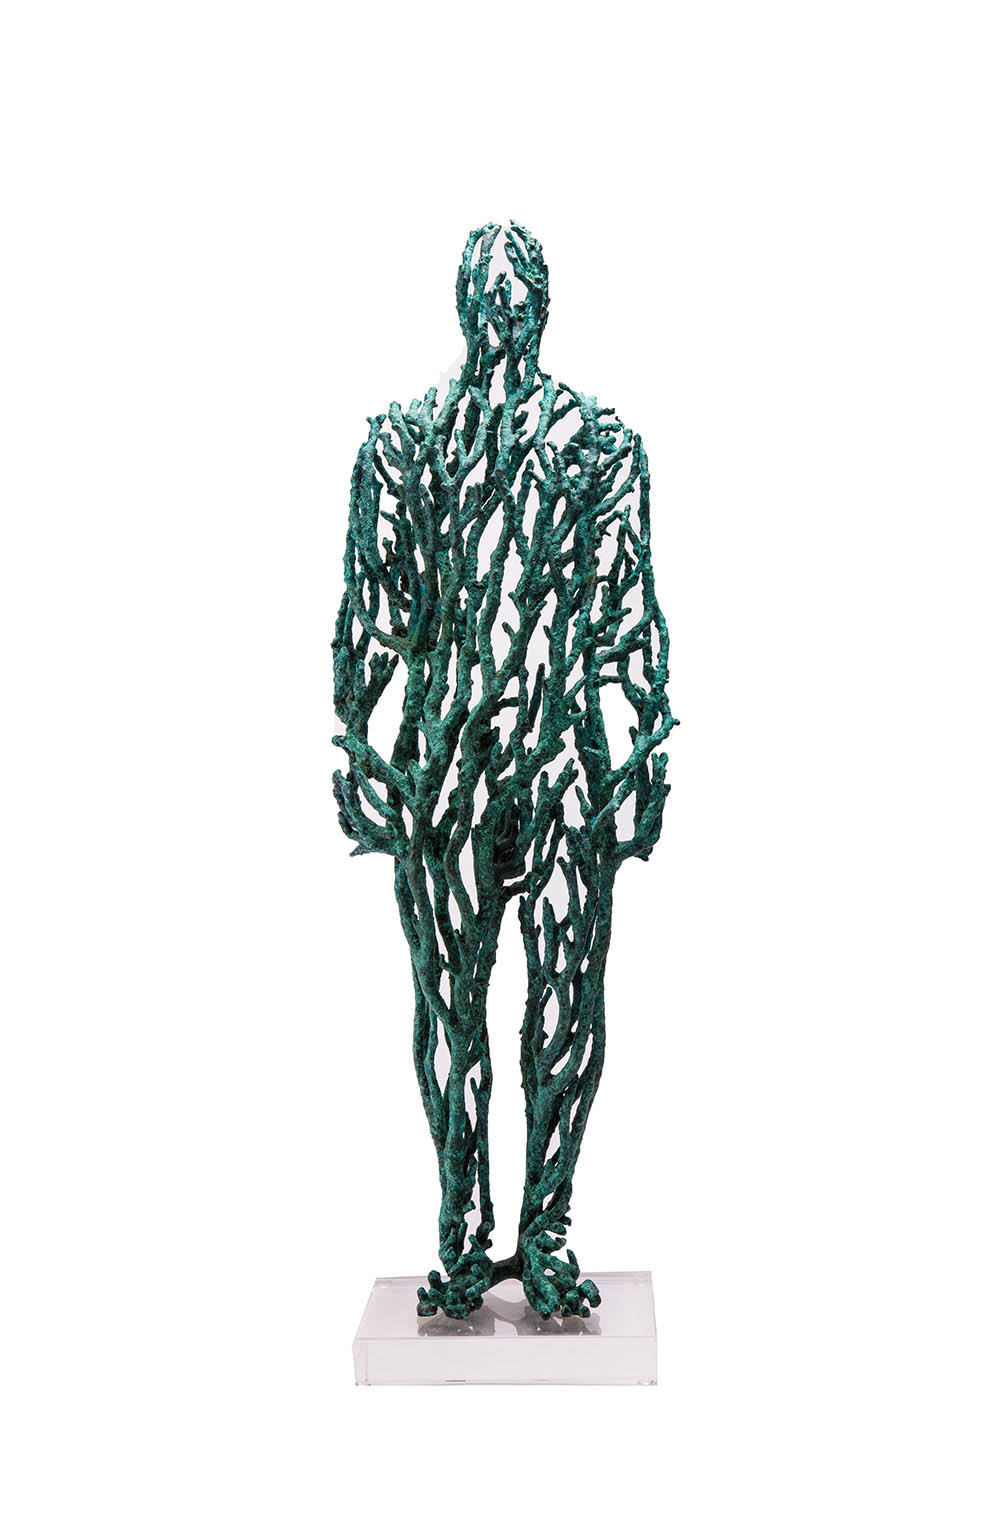 Stanislaw Trzebinski Home Grown - Full Coral Figure VI, 2017 (Collaboration with Charles Haupt) Bronze Edition 1/7 75cm x 20cm x 20cm